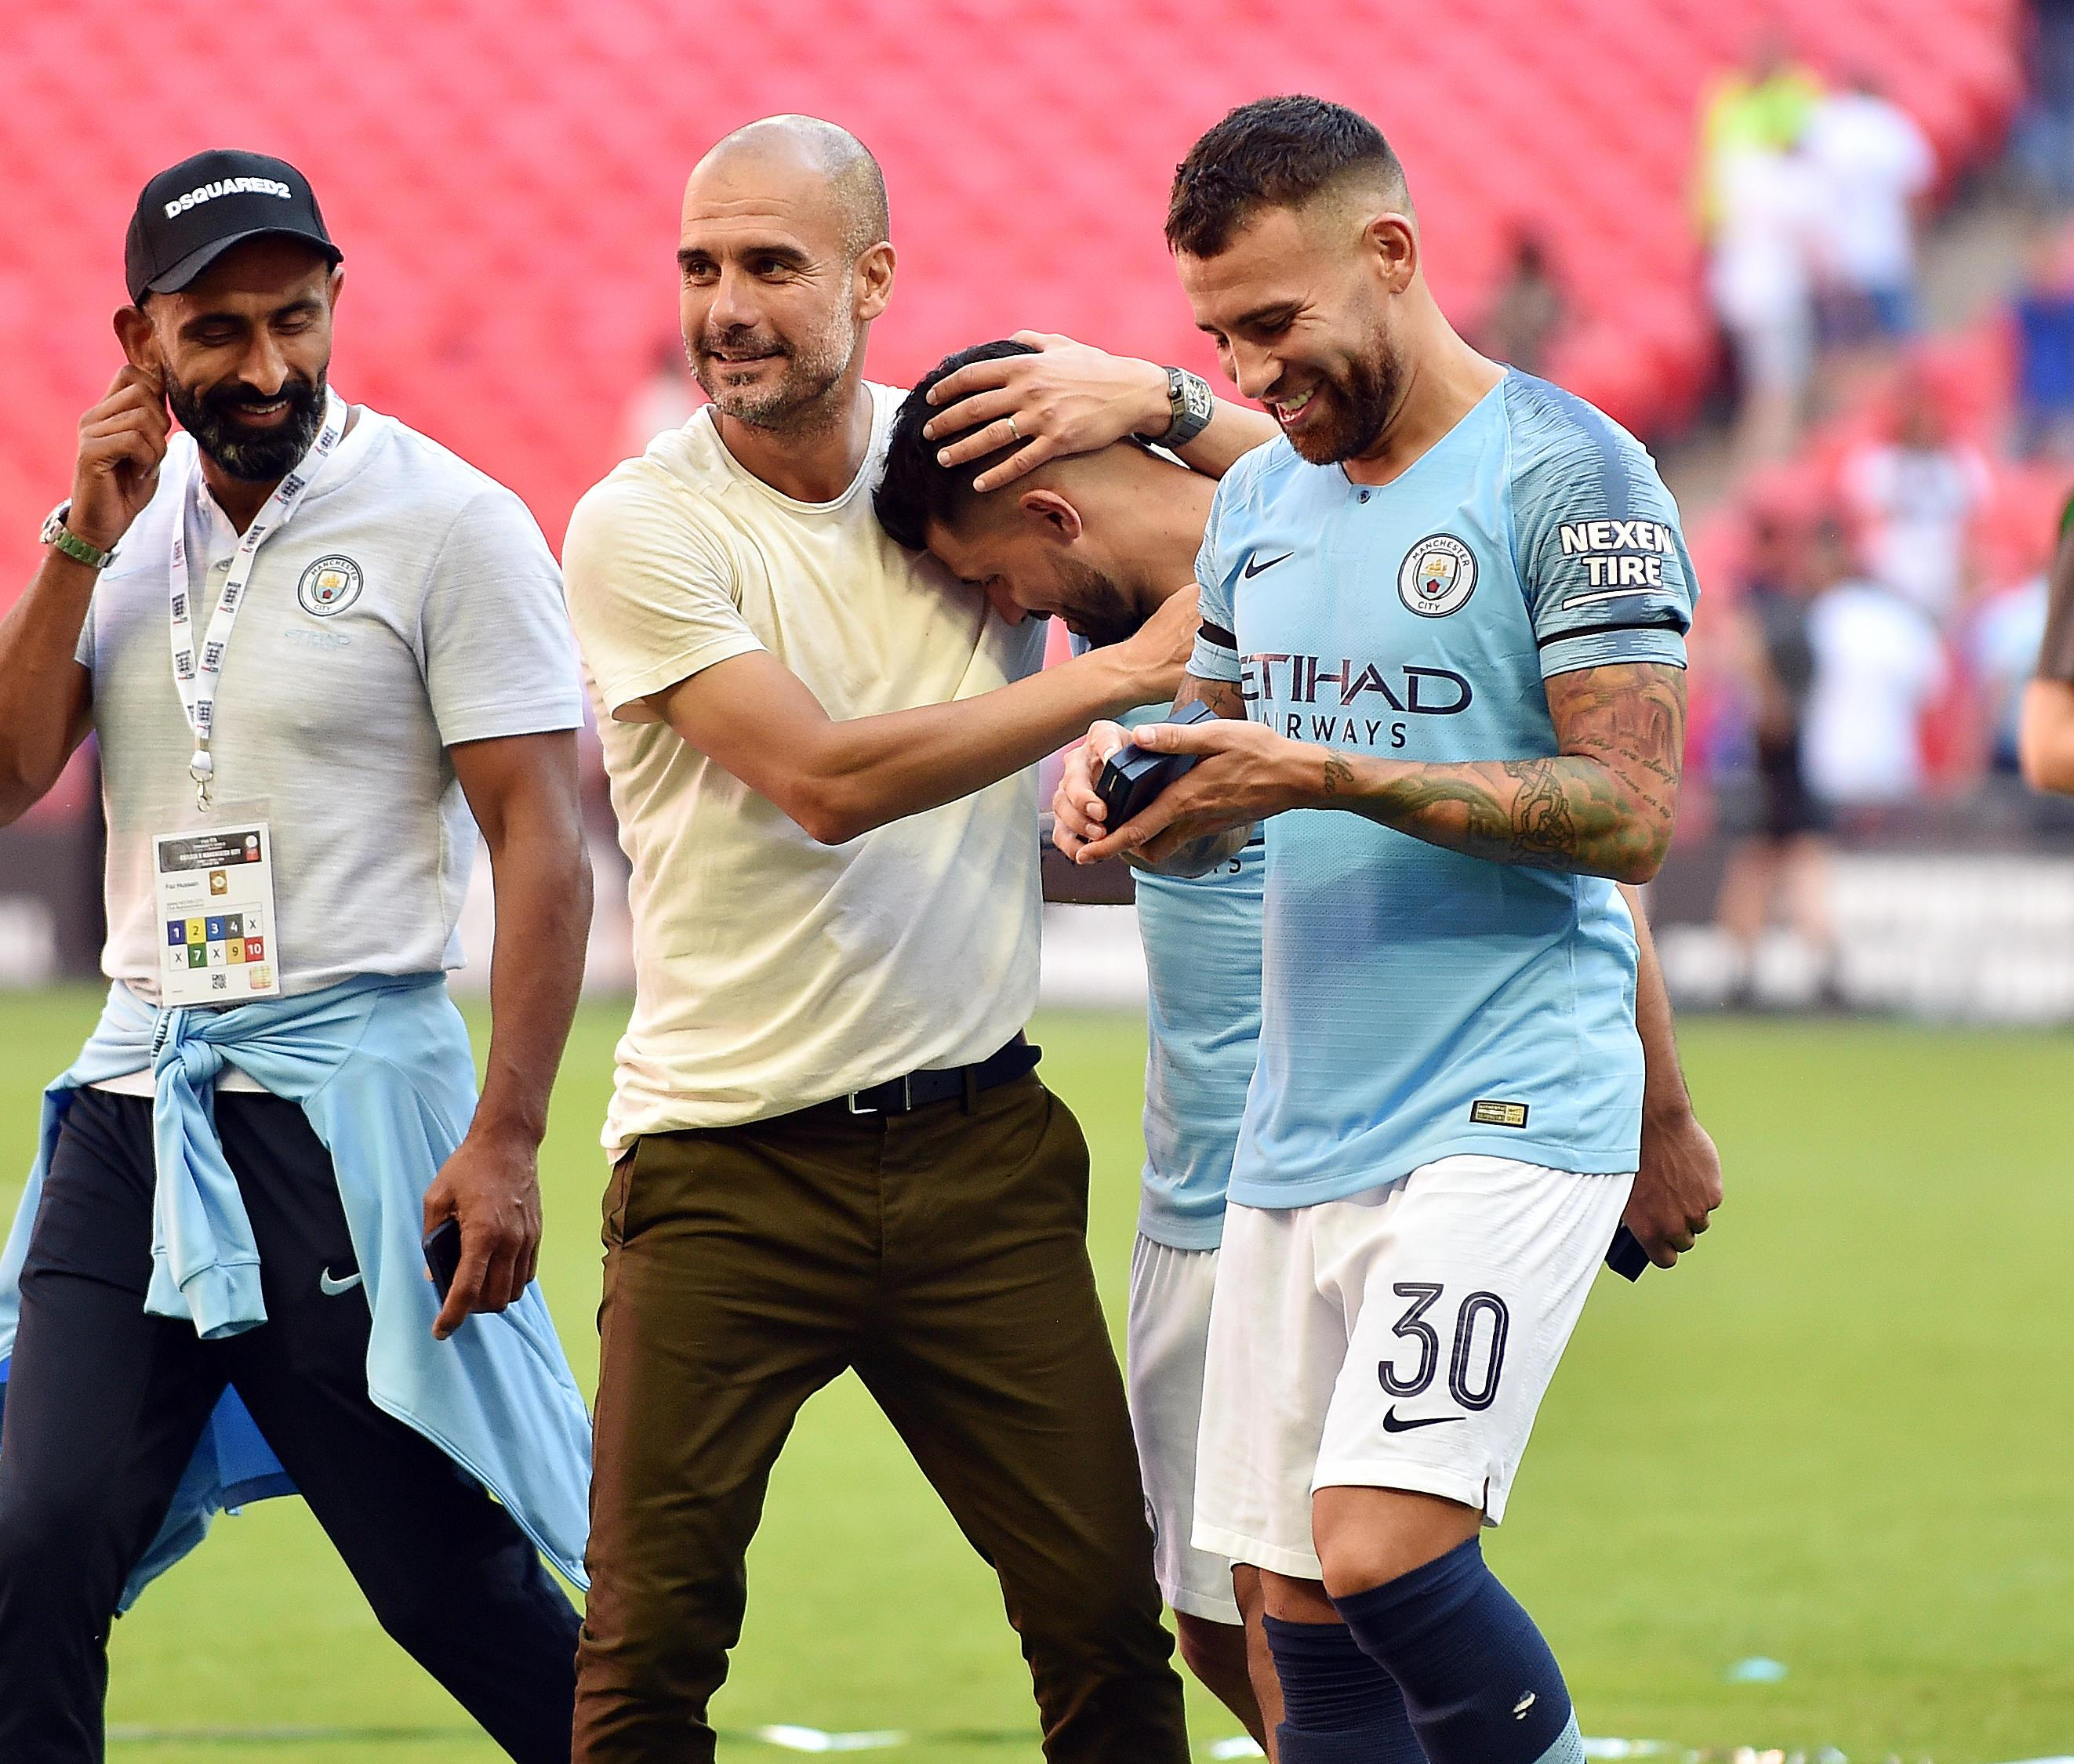 Finishing above Pep Guardiola's Manchester City is easier said than done